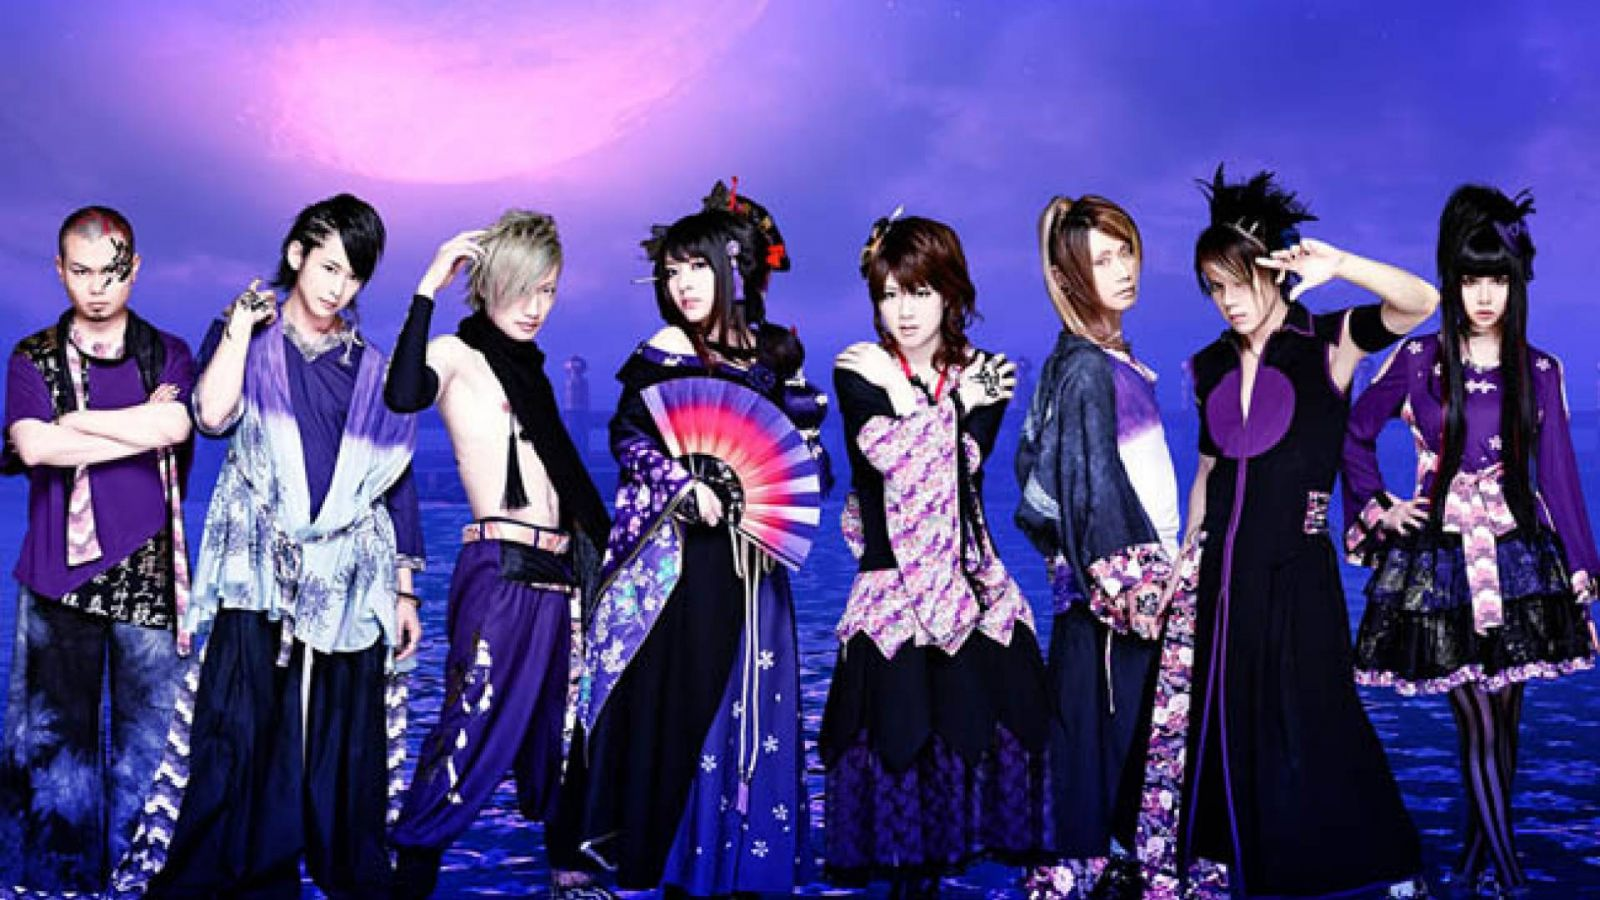 WagakkiBand © Wagakki Band | Avex Entertainment All Rights Reserved